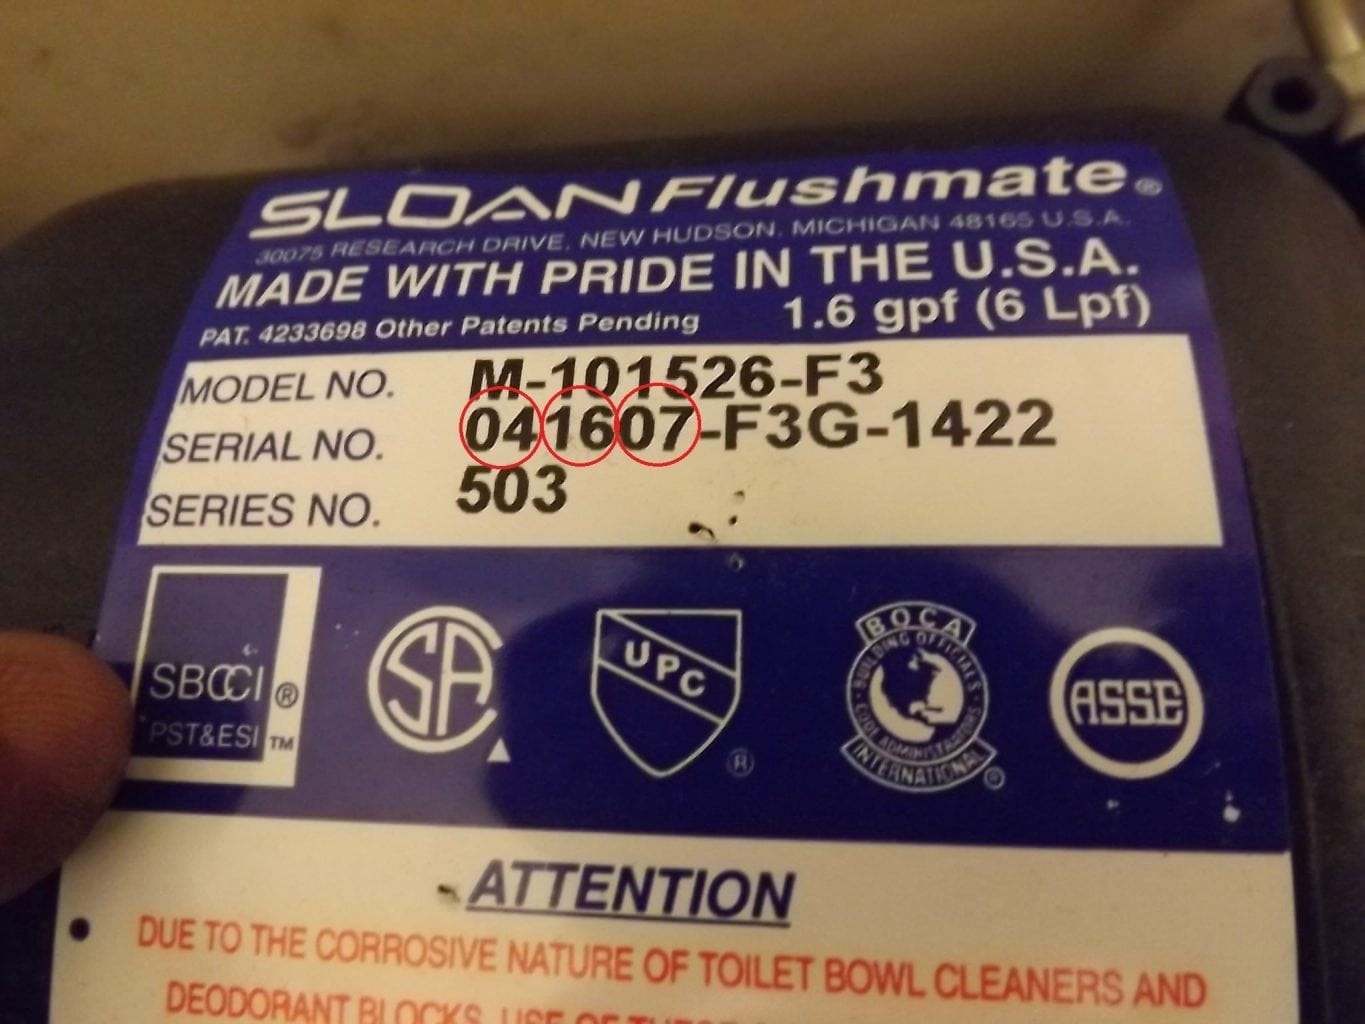 Date code for the Flushmate recall